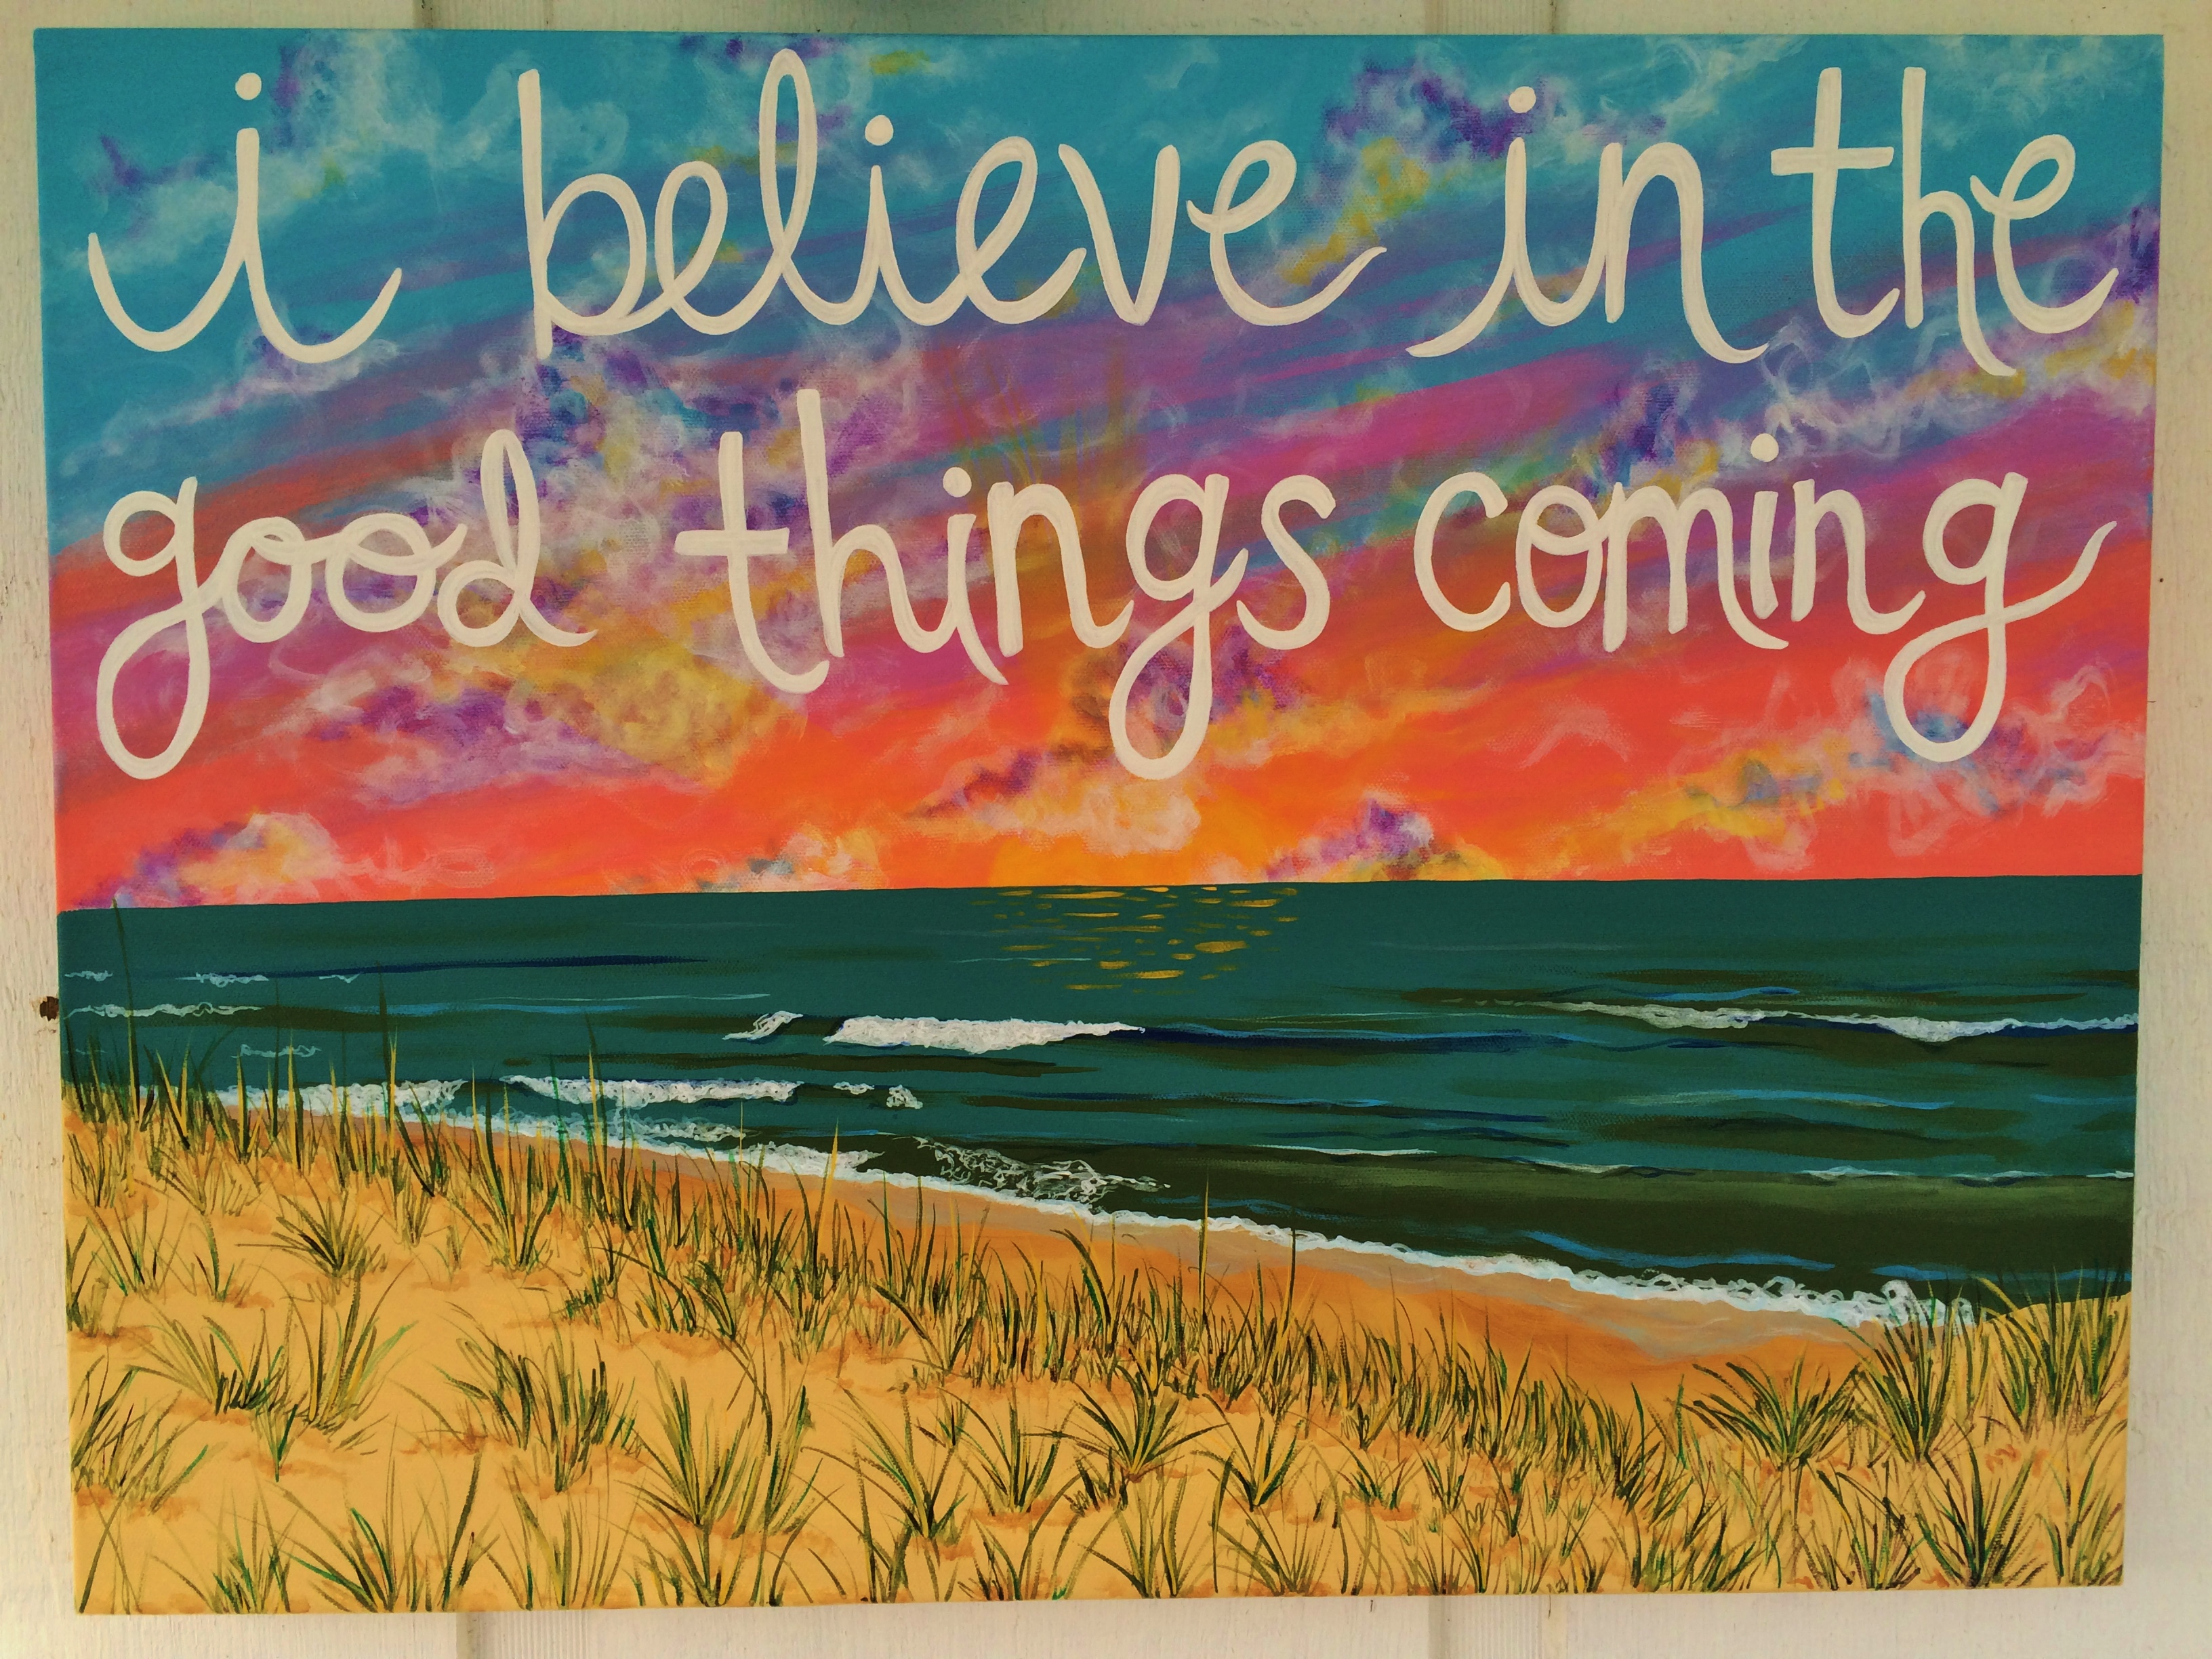 i believe in the good things coming